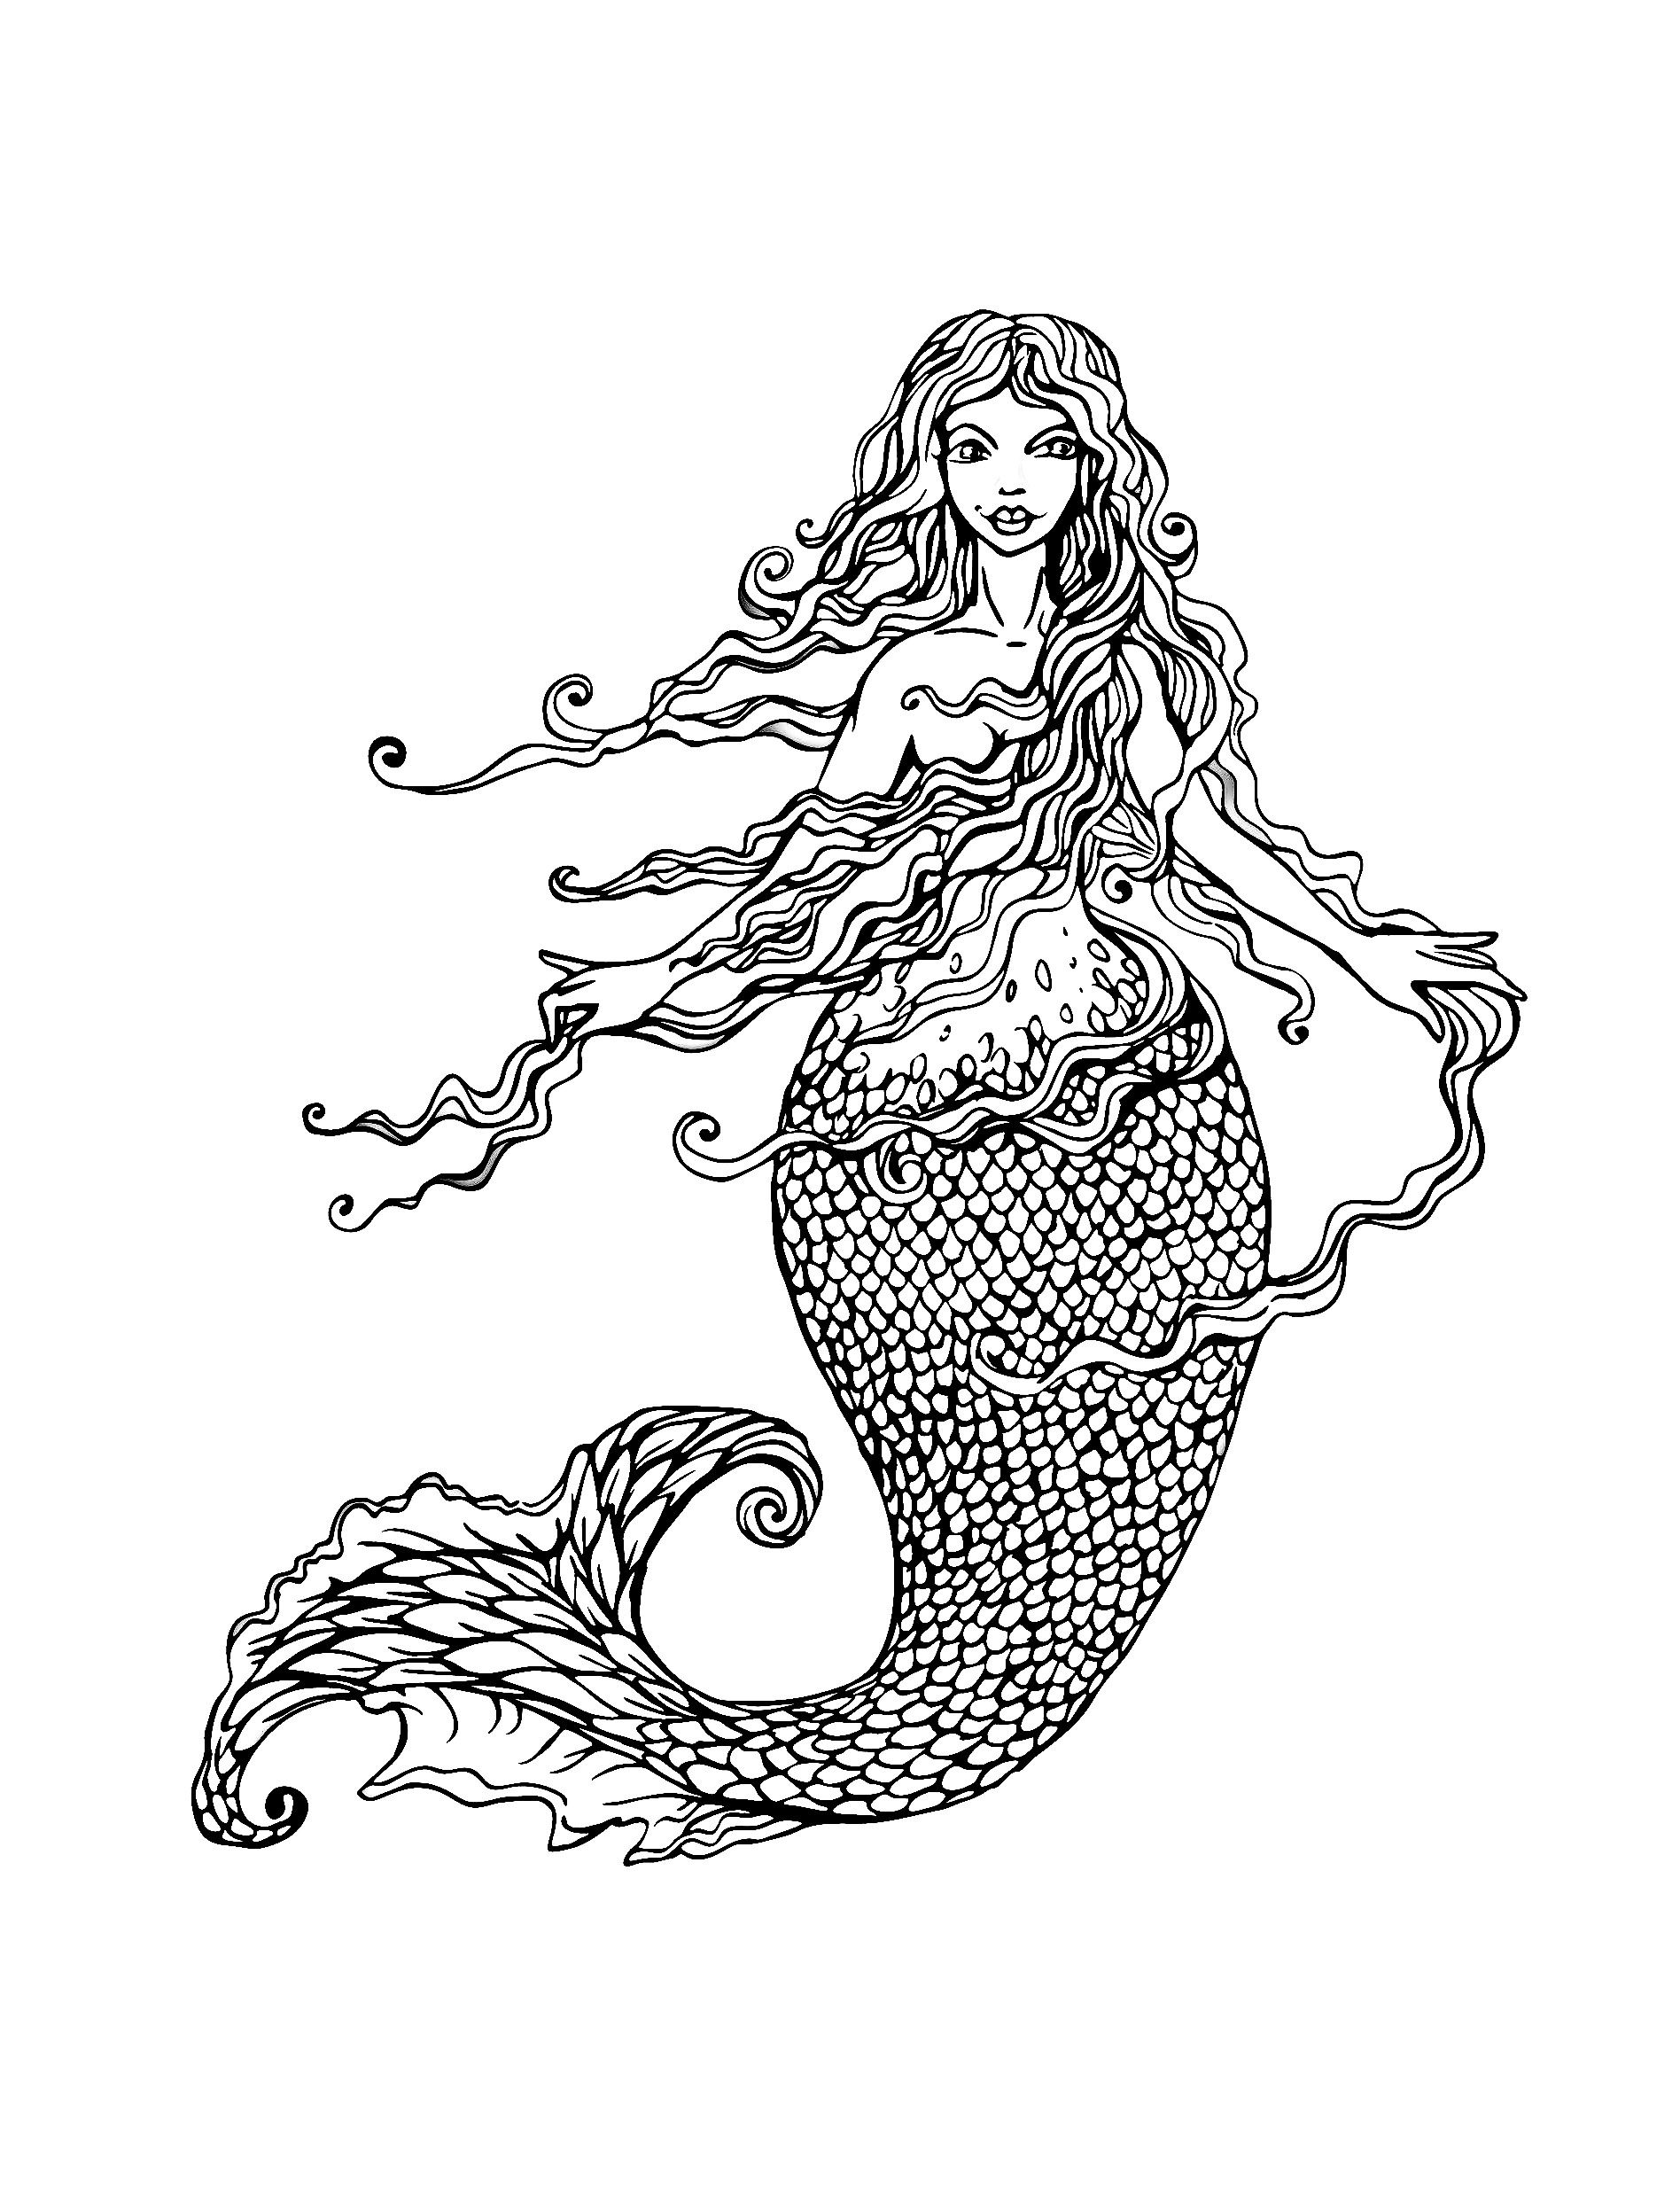 Free coloring page coloring adult mermaid with long hair by